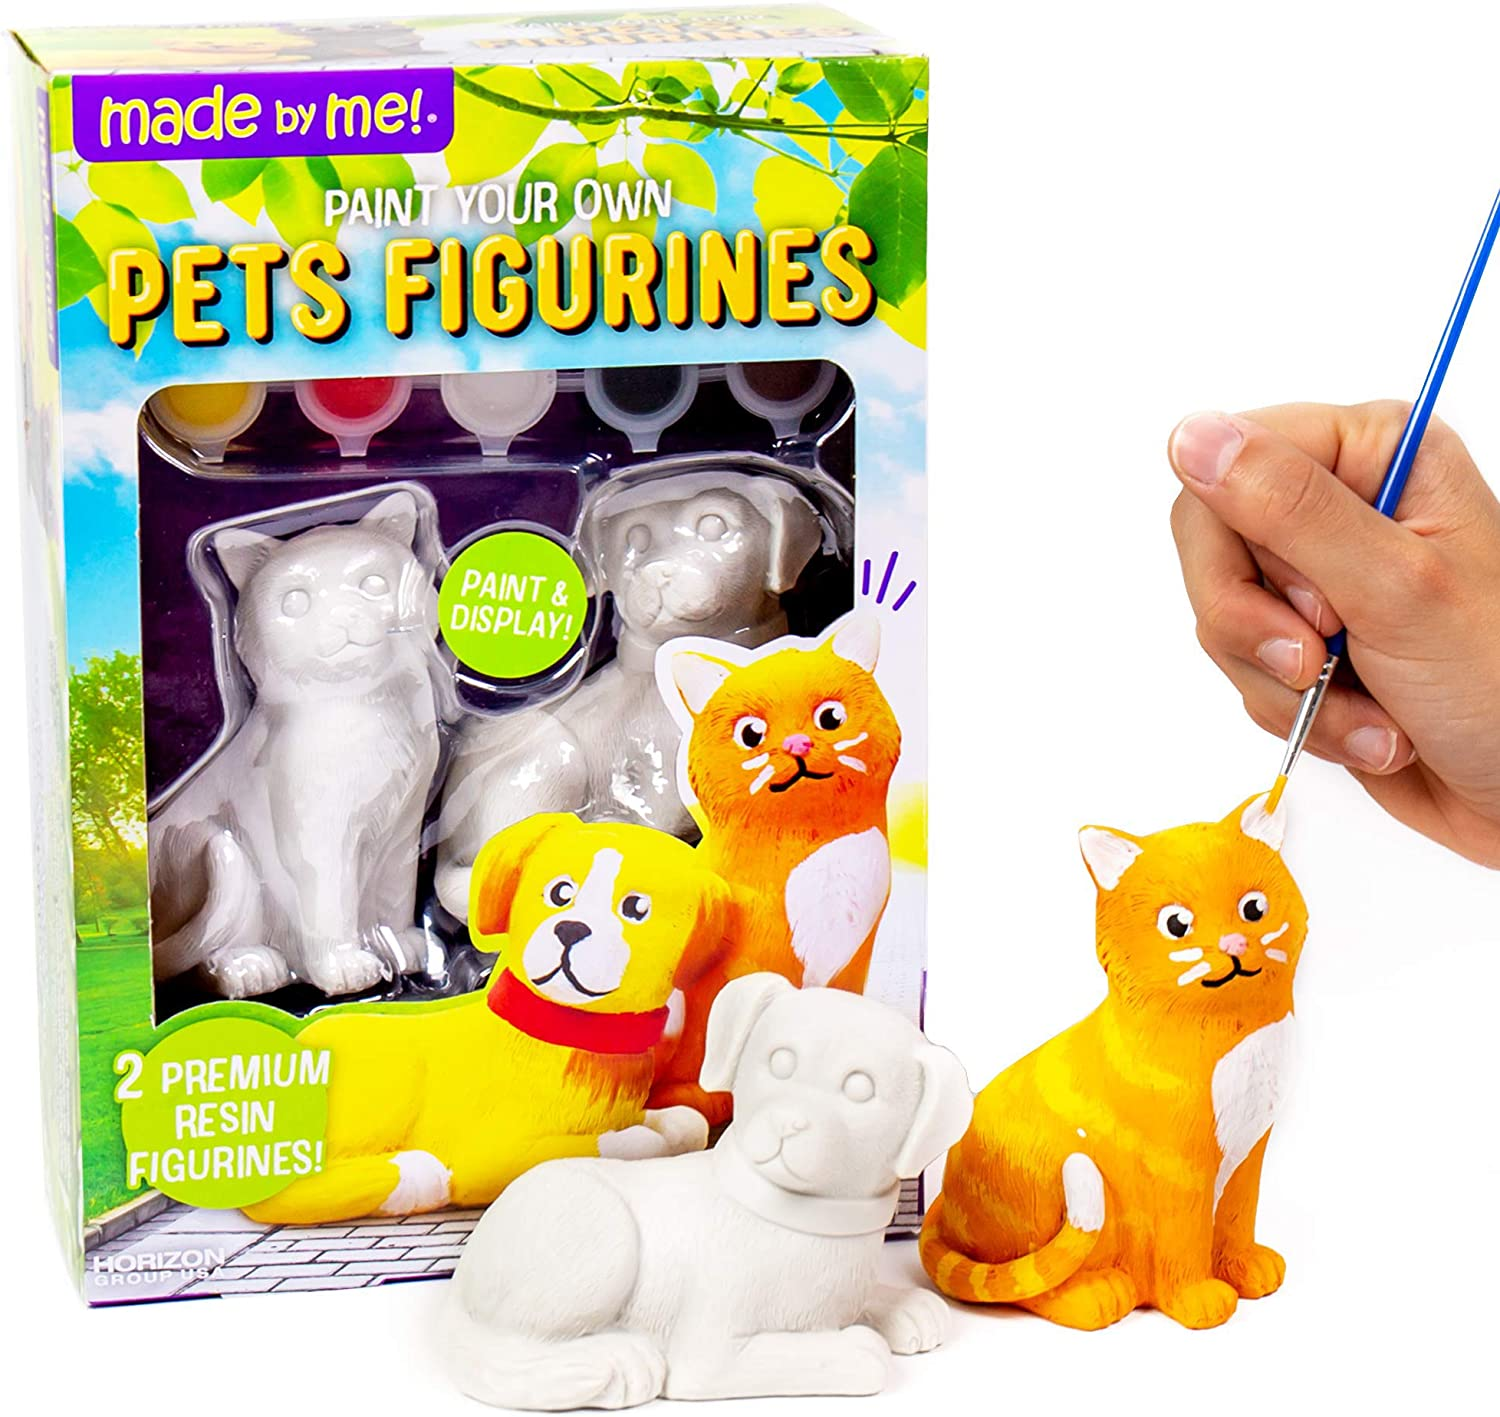 Made By Me Pets Figurines 2 Resin Paintables by Horizon Group USA, Cat & Dog, Acrylic Paints & Brush Included